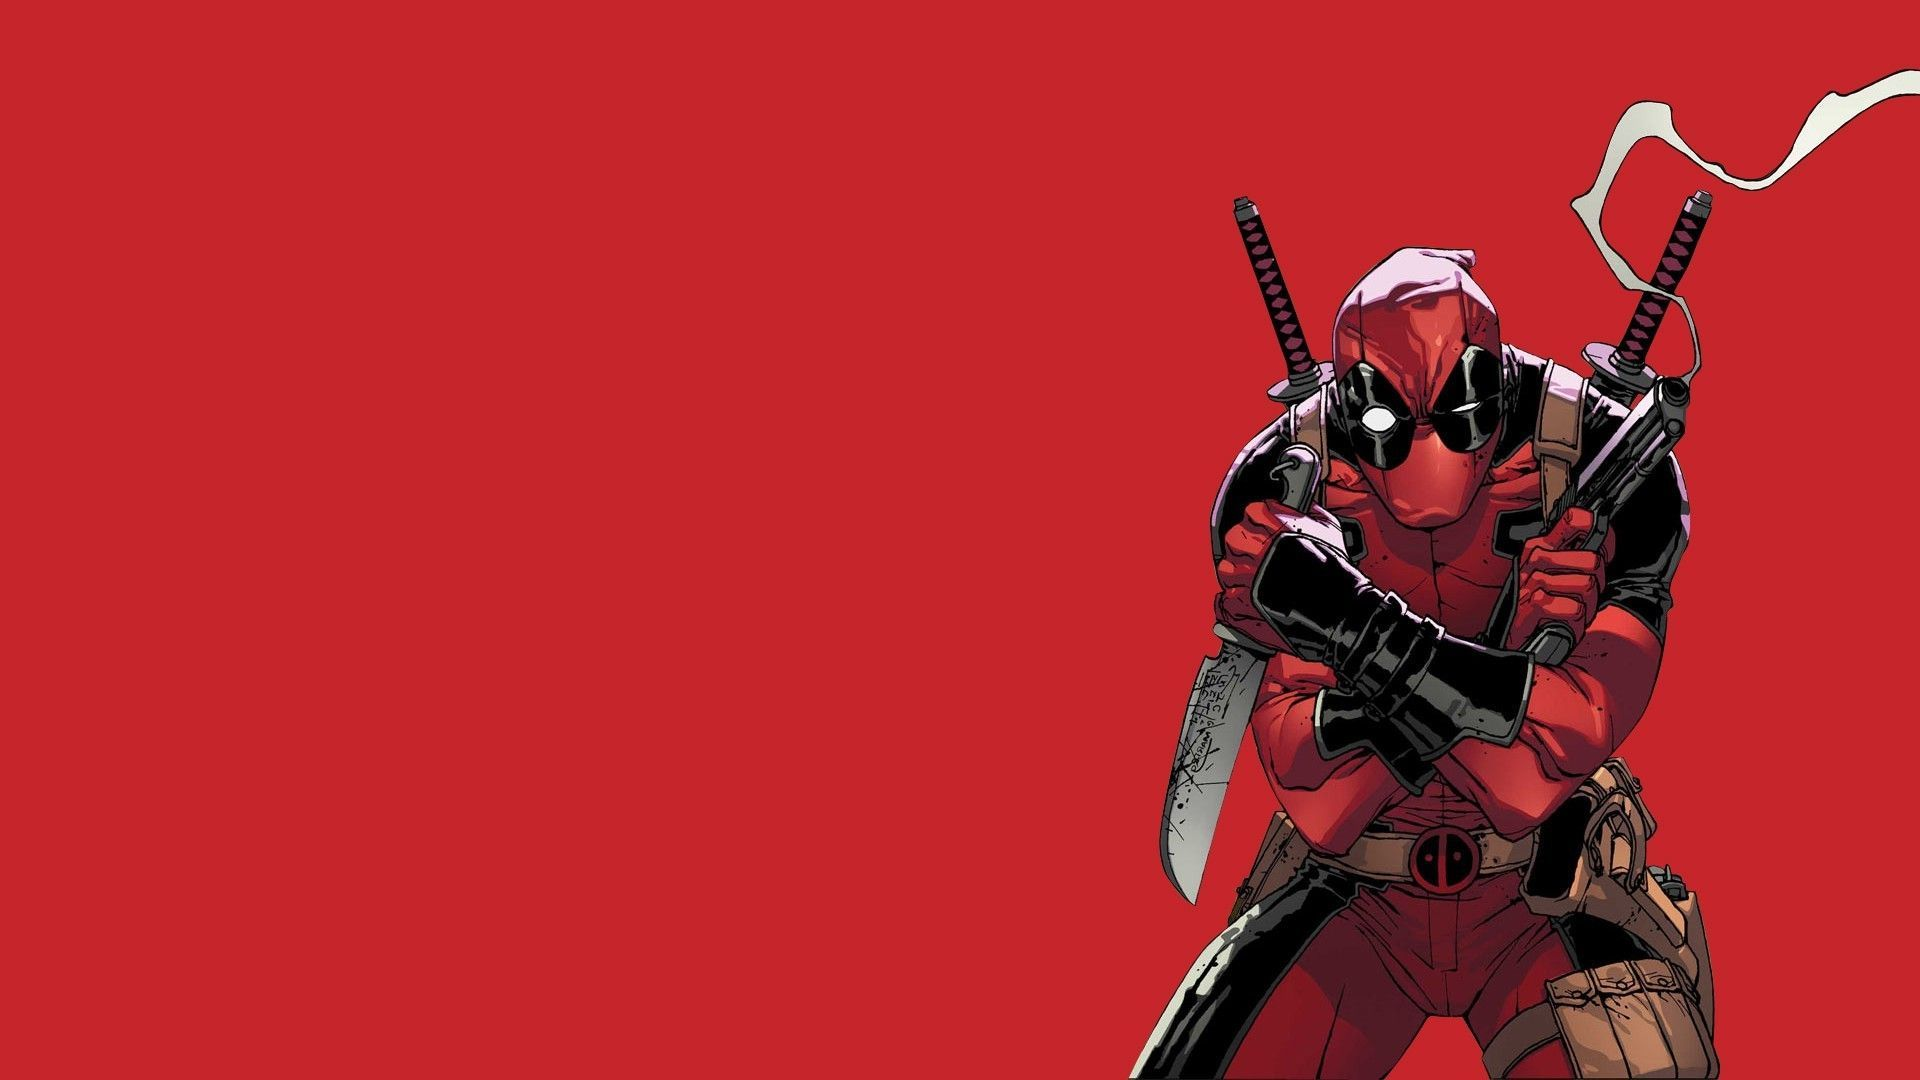 Awesome 4k Wallpaper For Mobile 1920x1080 Deadpool Wallpaper In 2020 Deadpool Wallpaper Deadpool Background Deadpool Movie Wallpaper